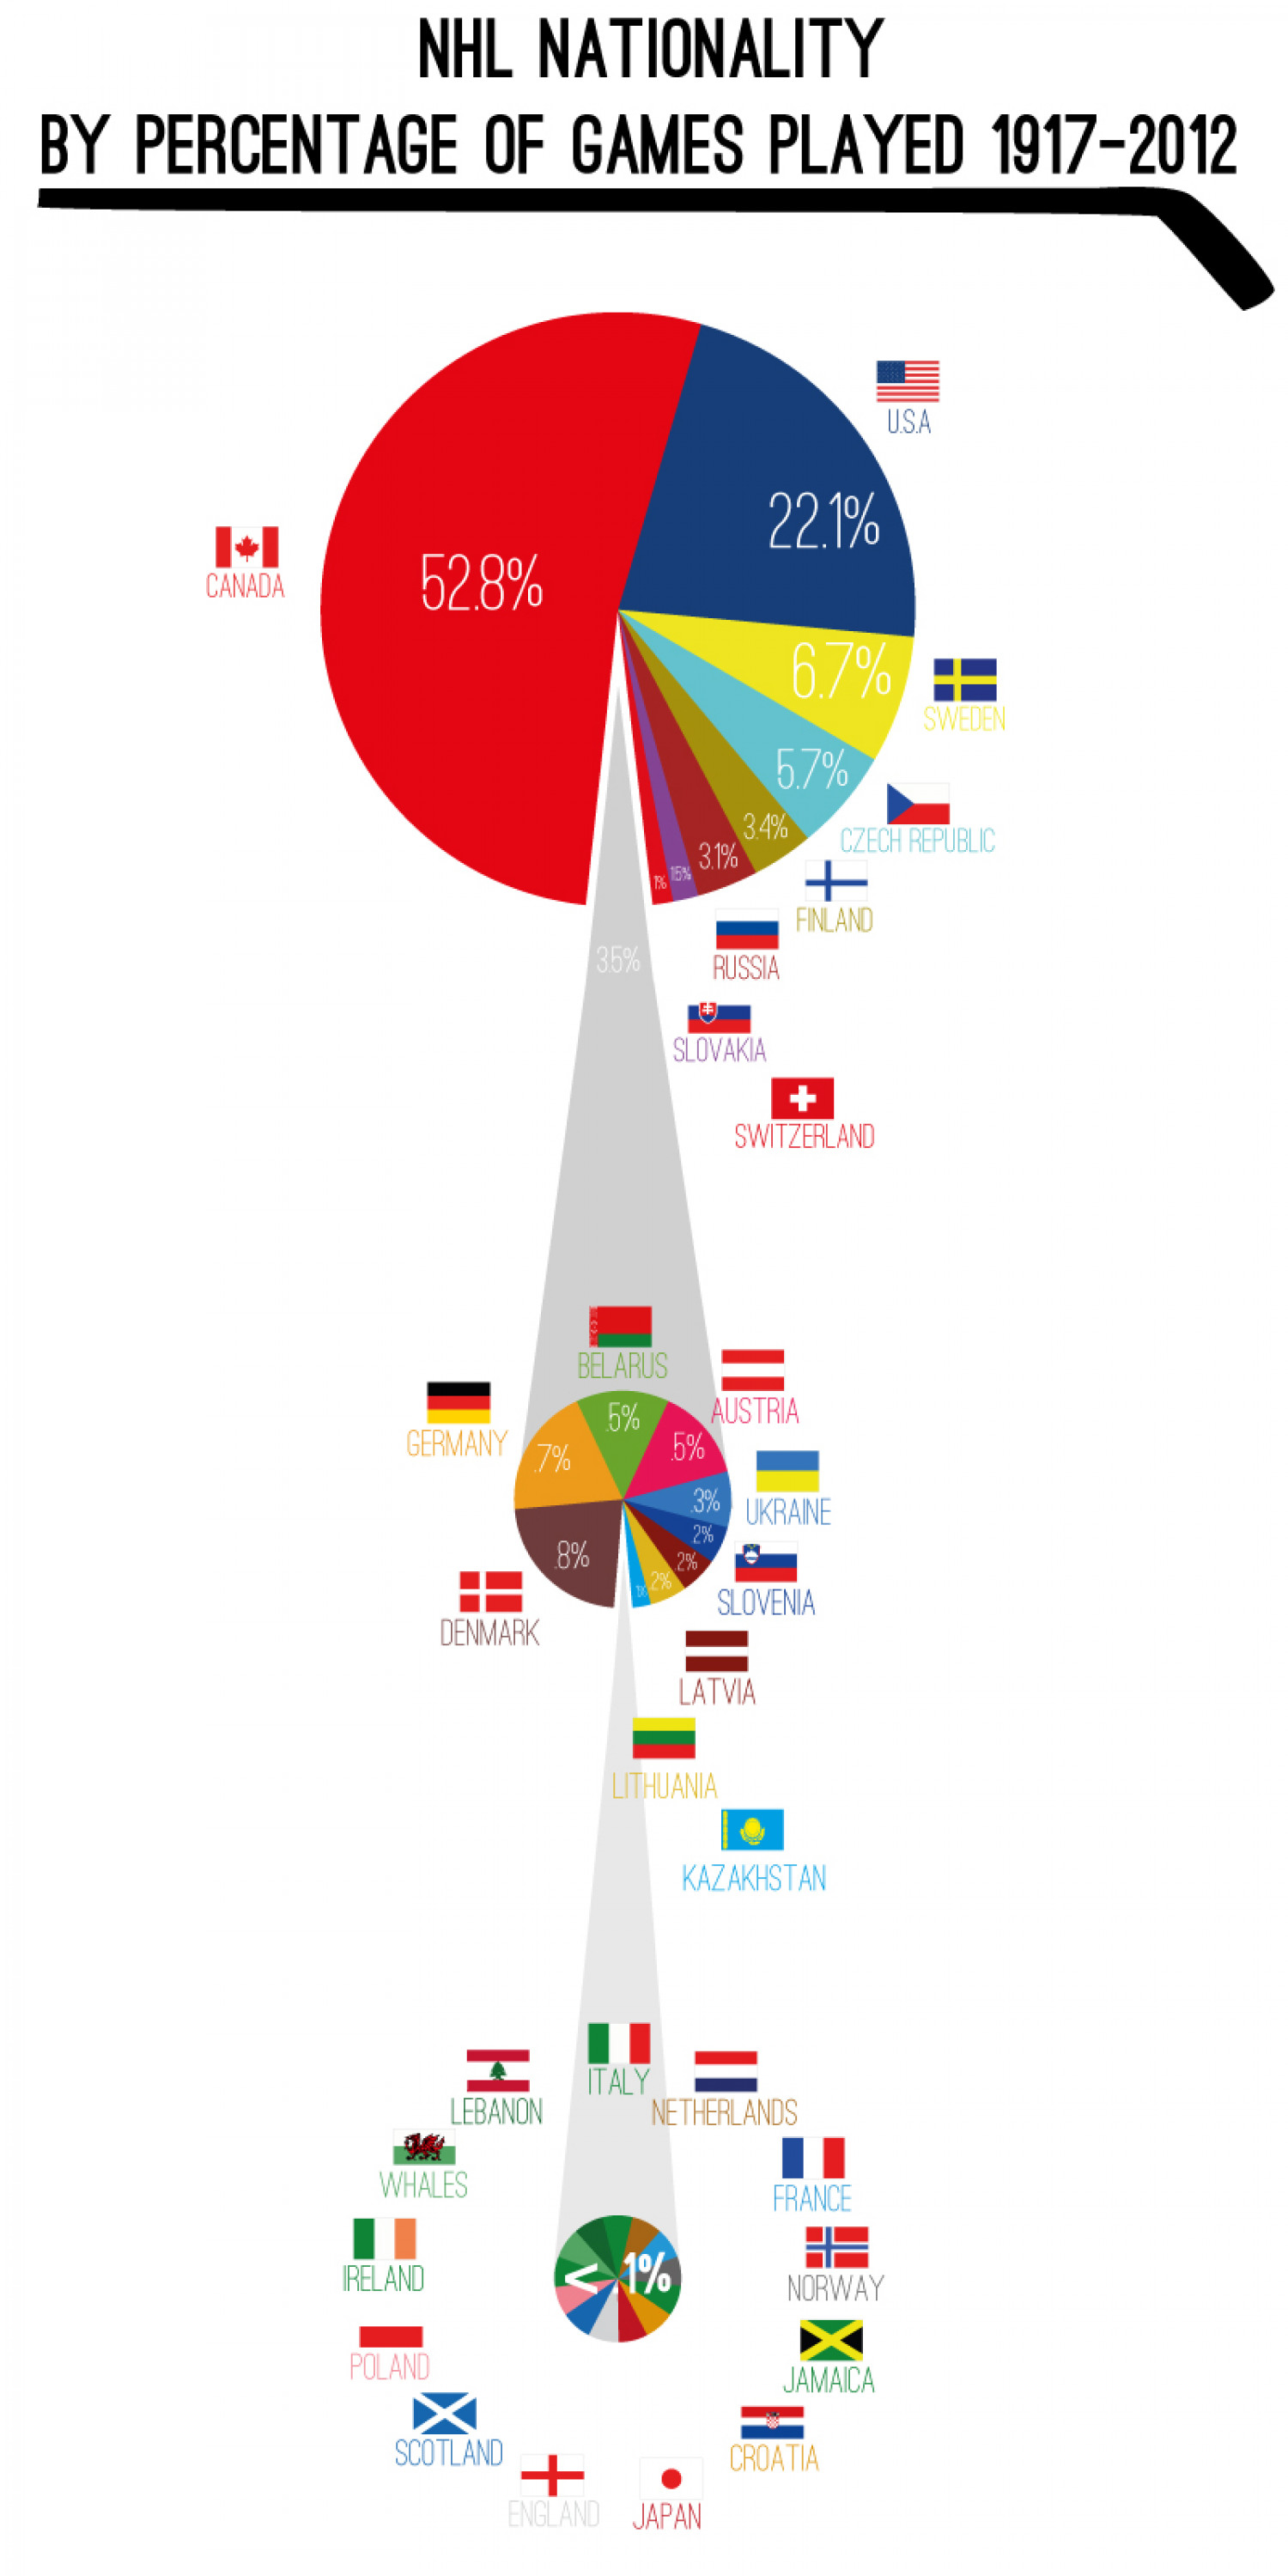 NHL Nationality by Pecentage of Games Played (1917-2012) Infographic